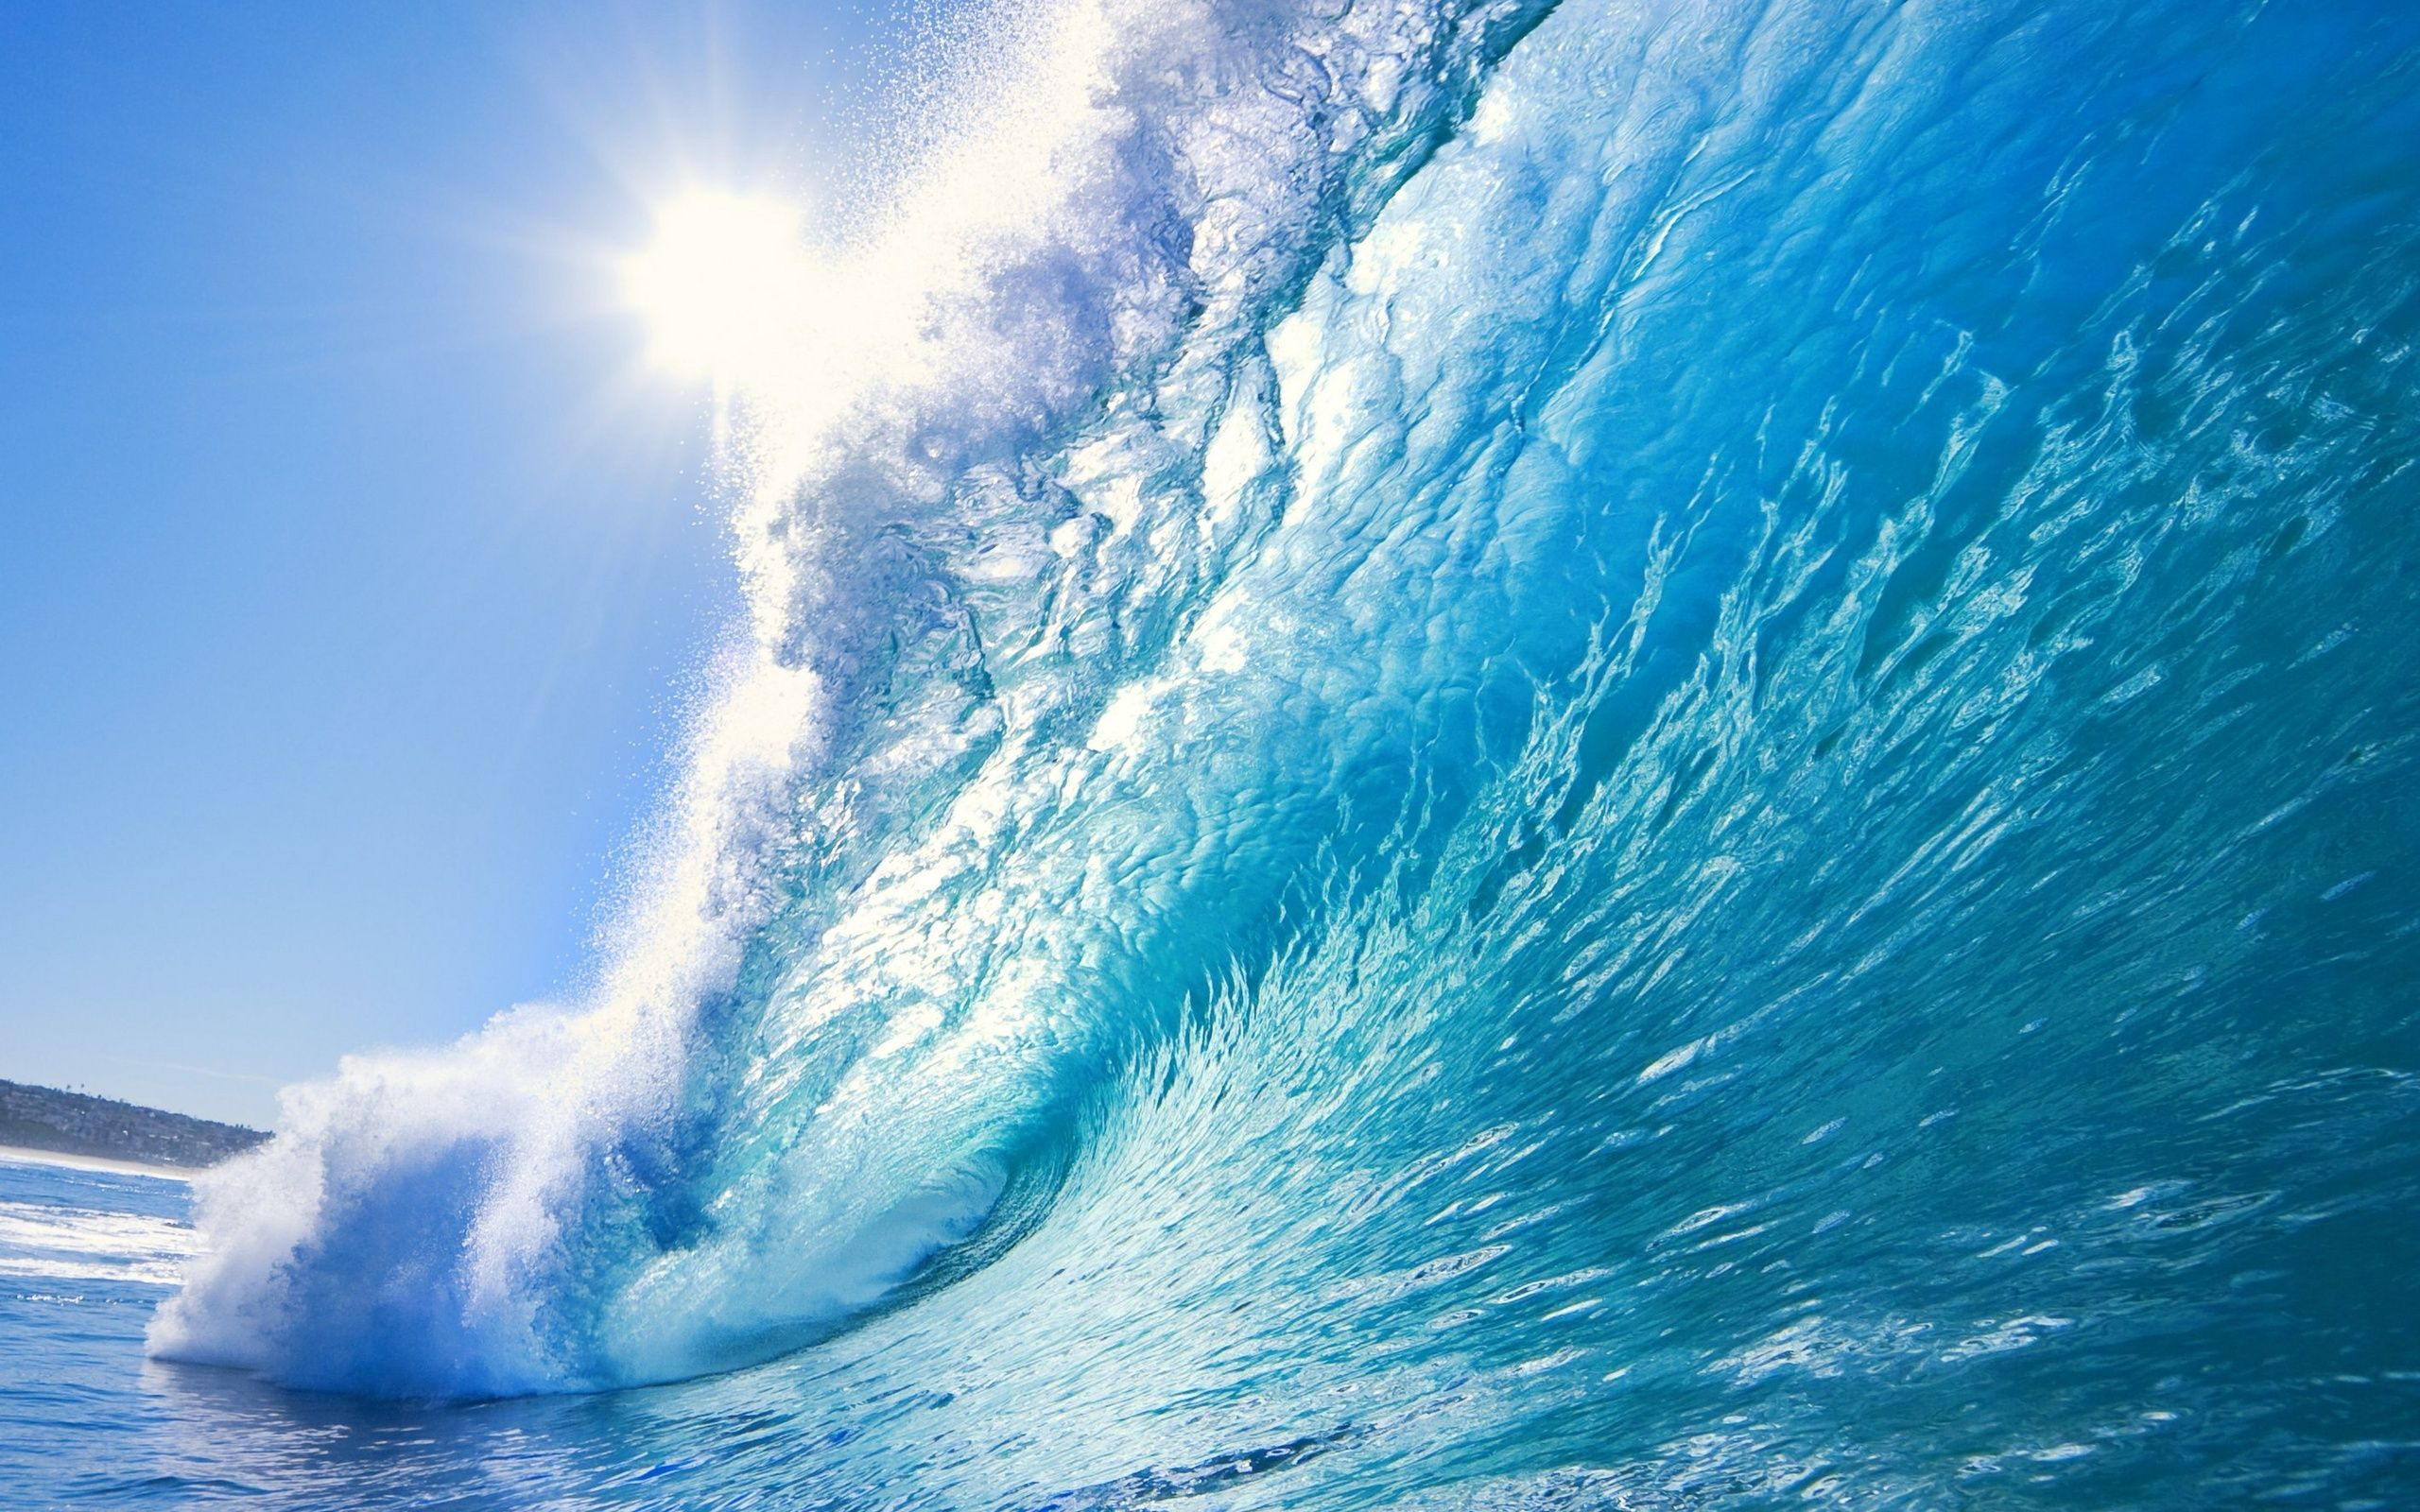 computer desktop wallpaper a· the clear blue wave